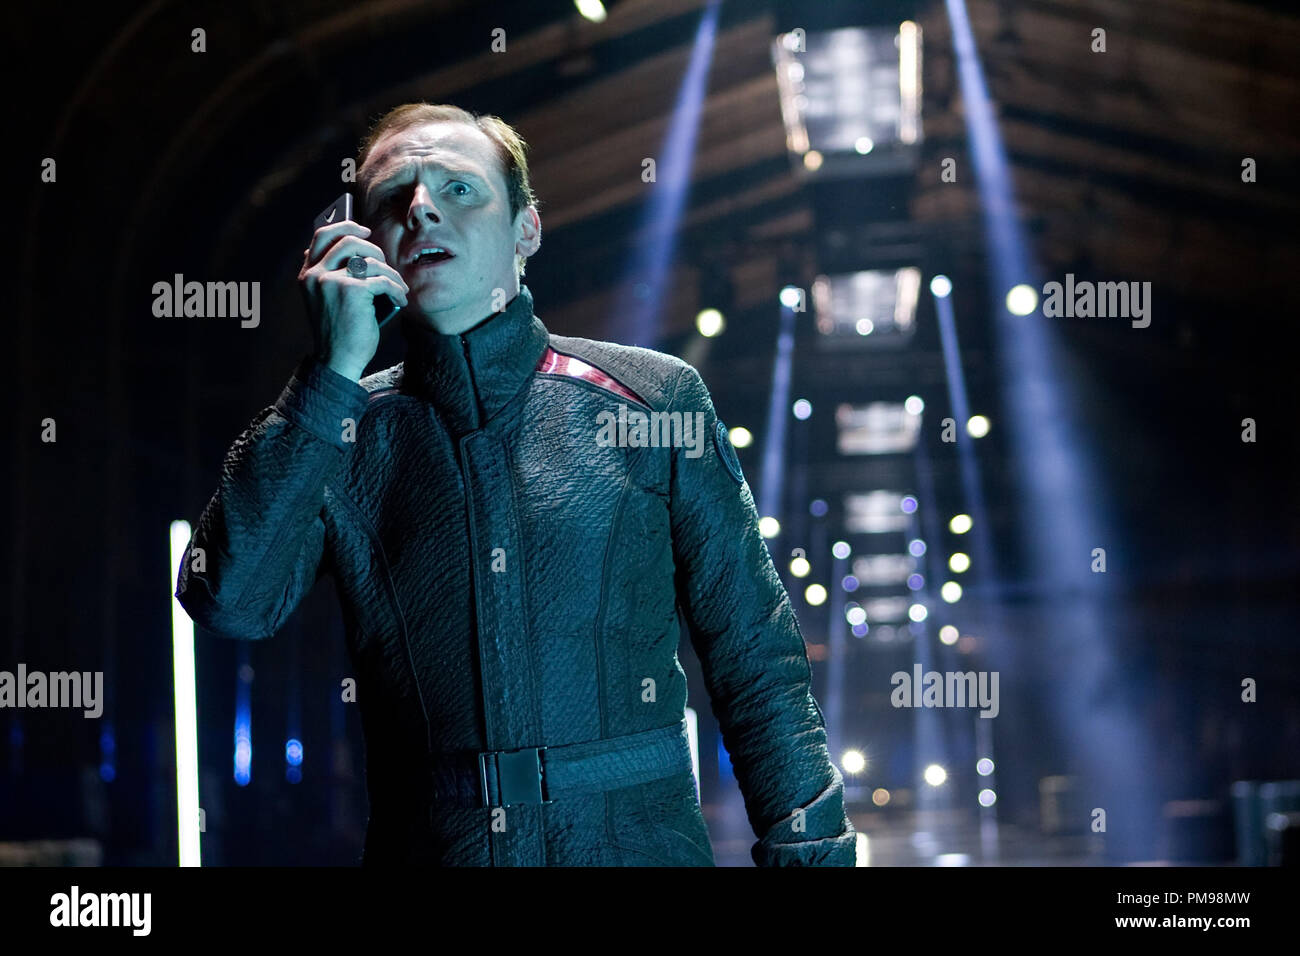 Simon Pegg in STAR TREK INTO DARKNESS, from Paramount Pictures and Skydance Productions. - Stock Image